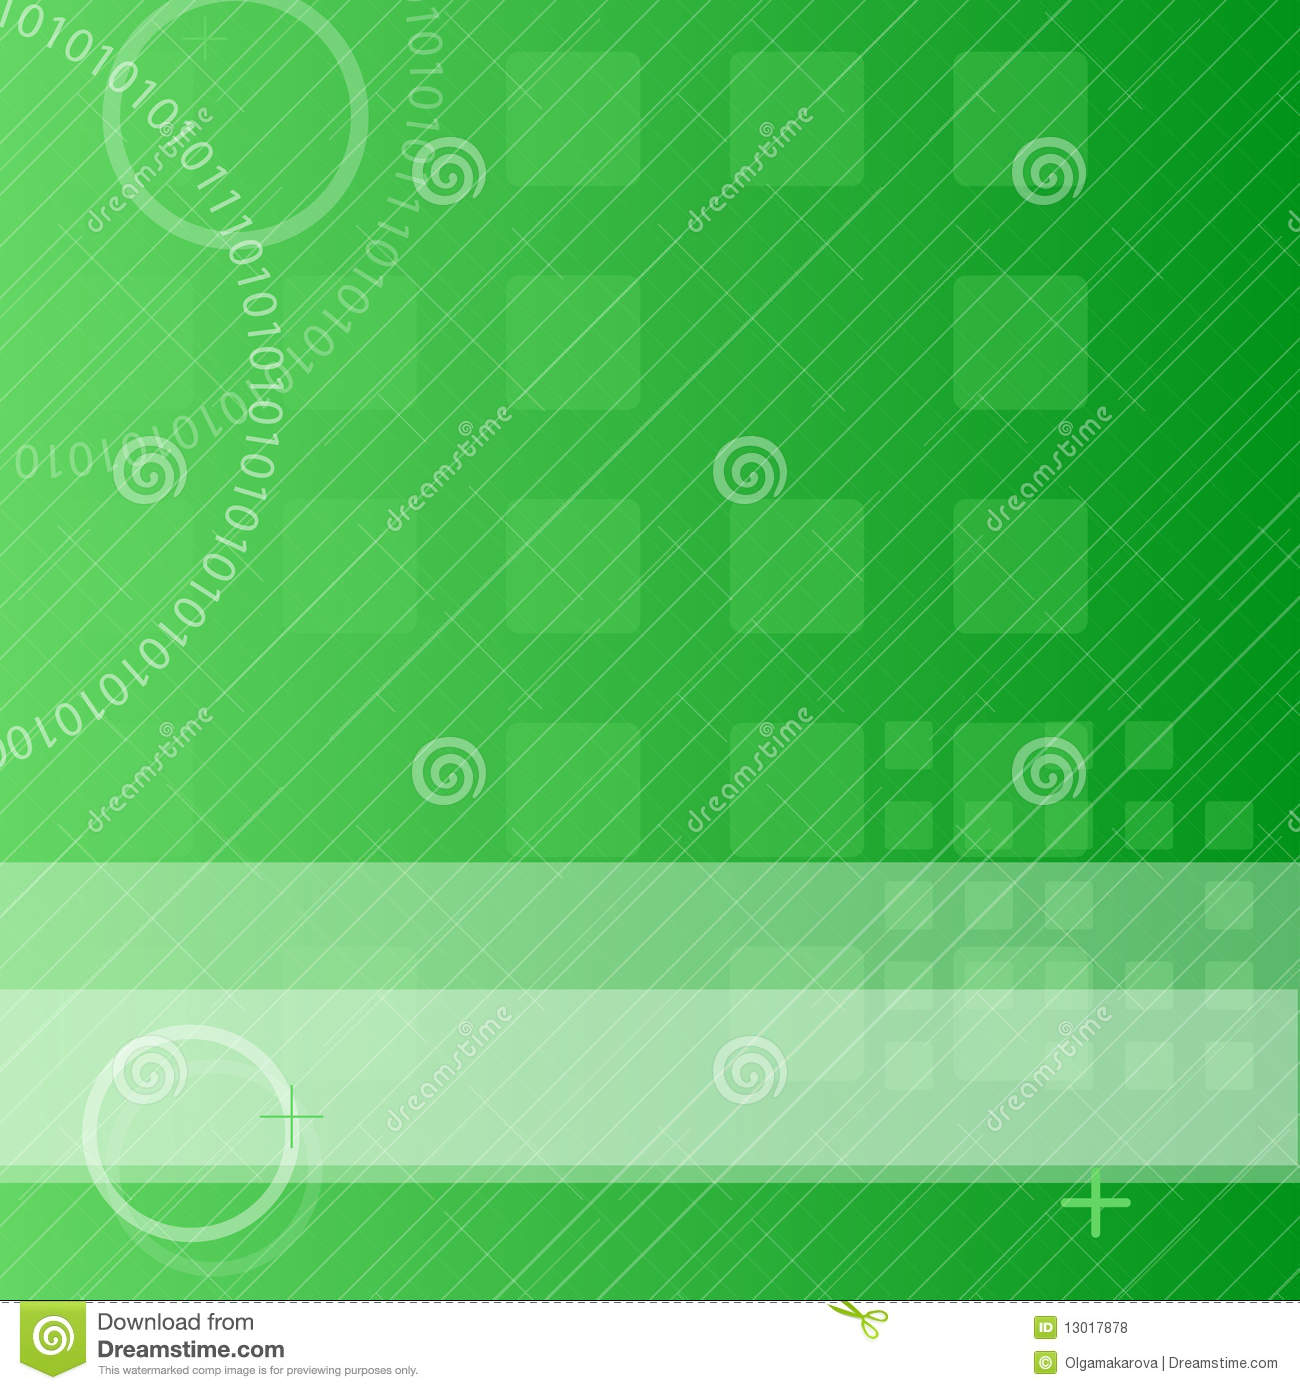 Green techno background